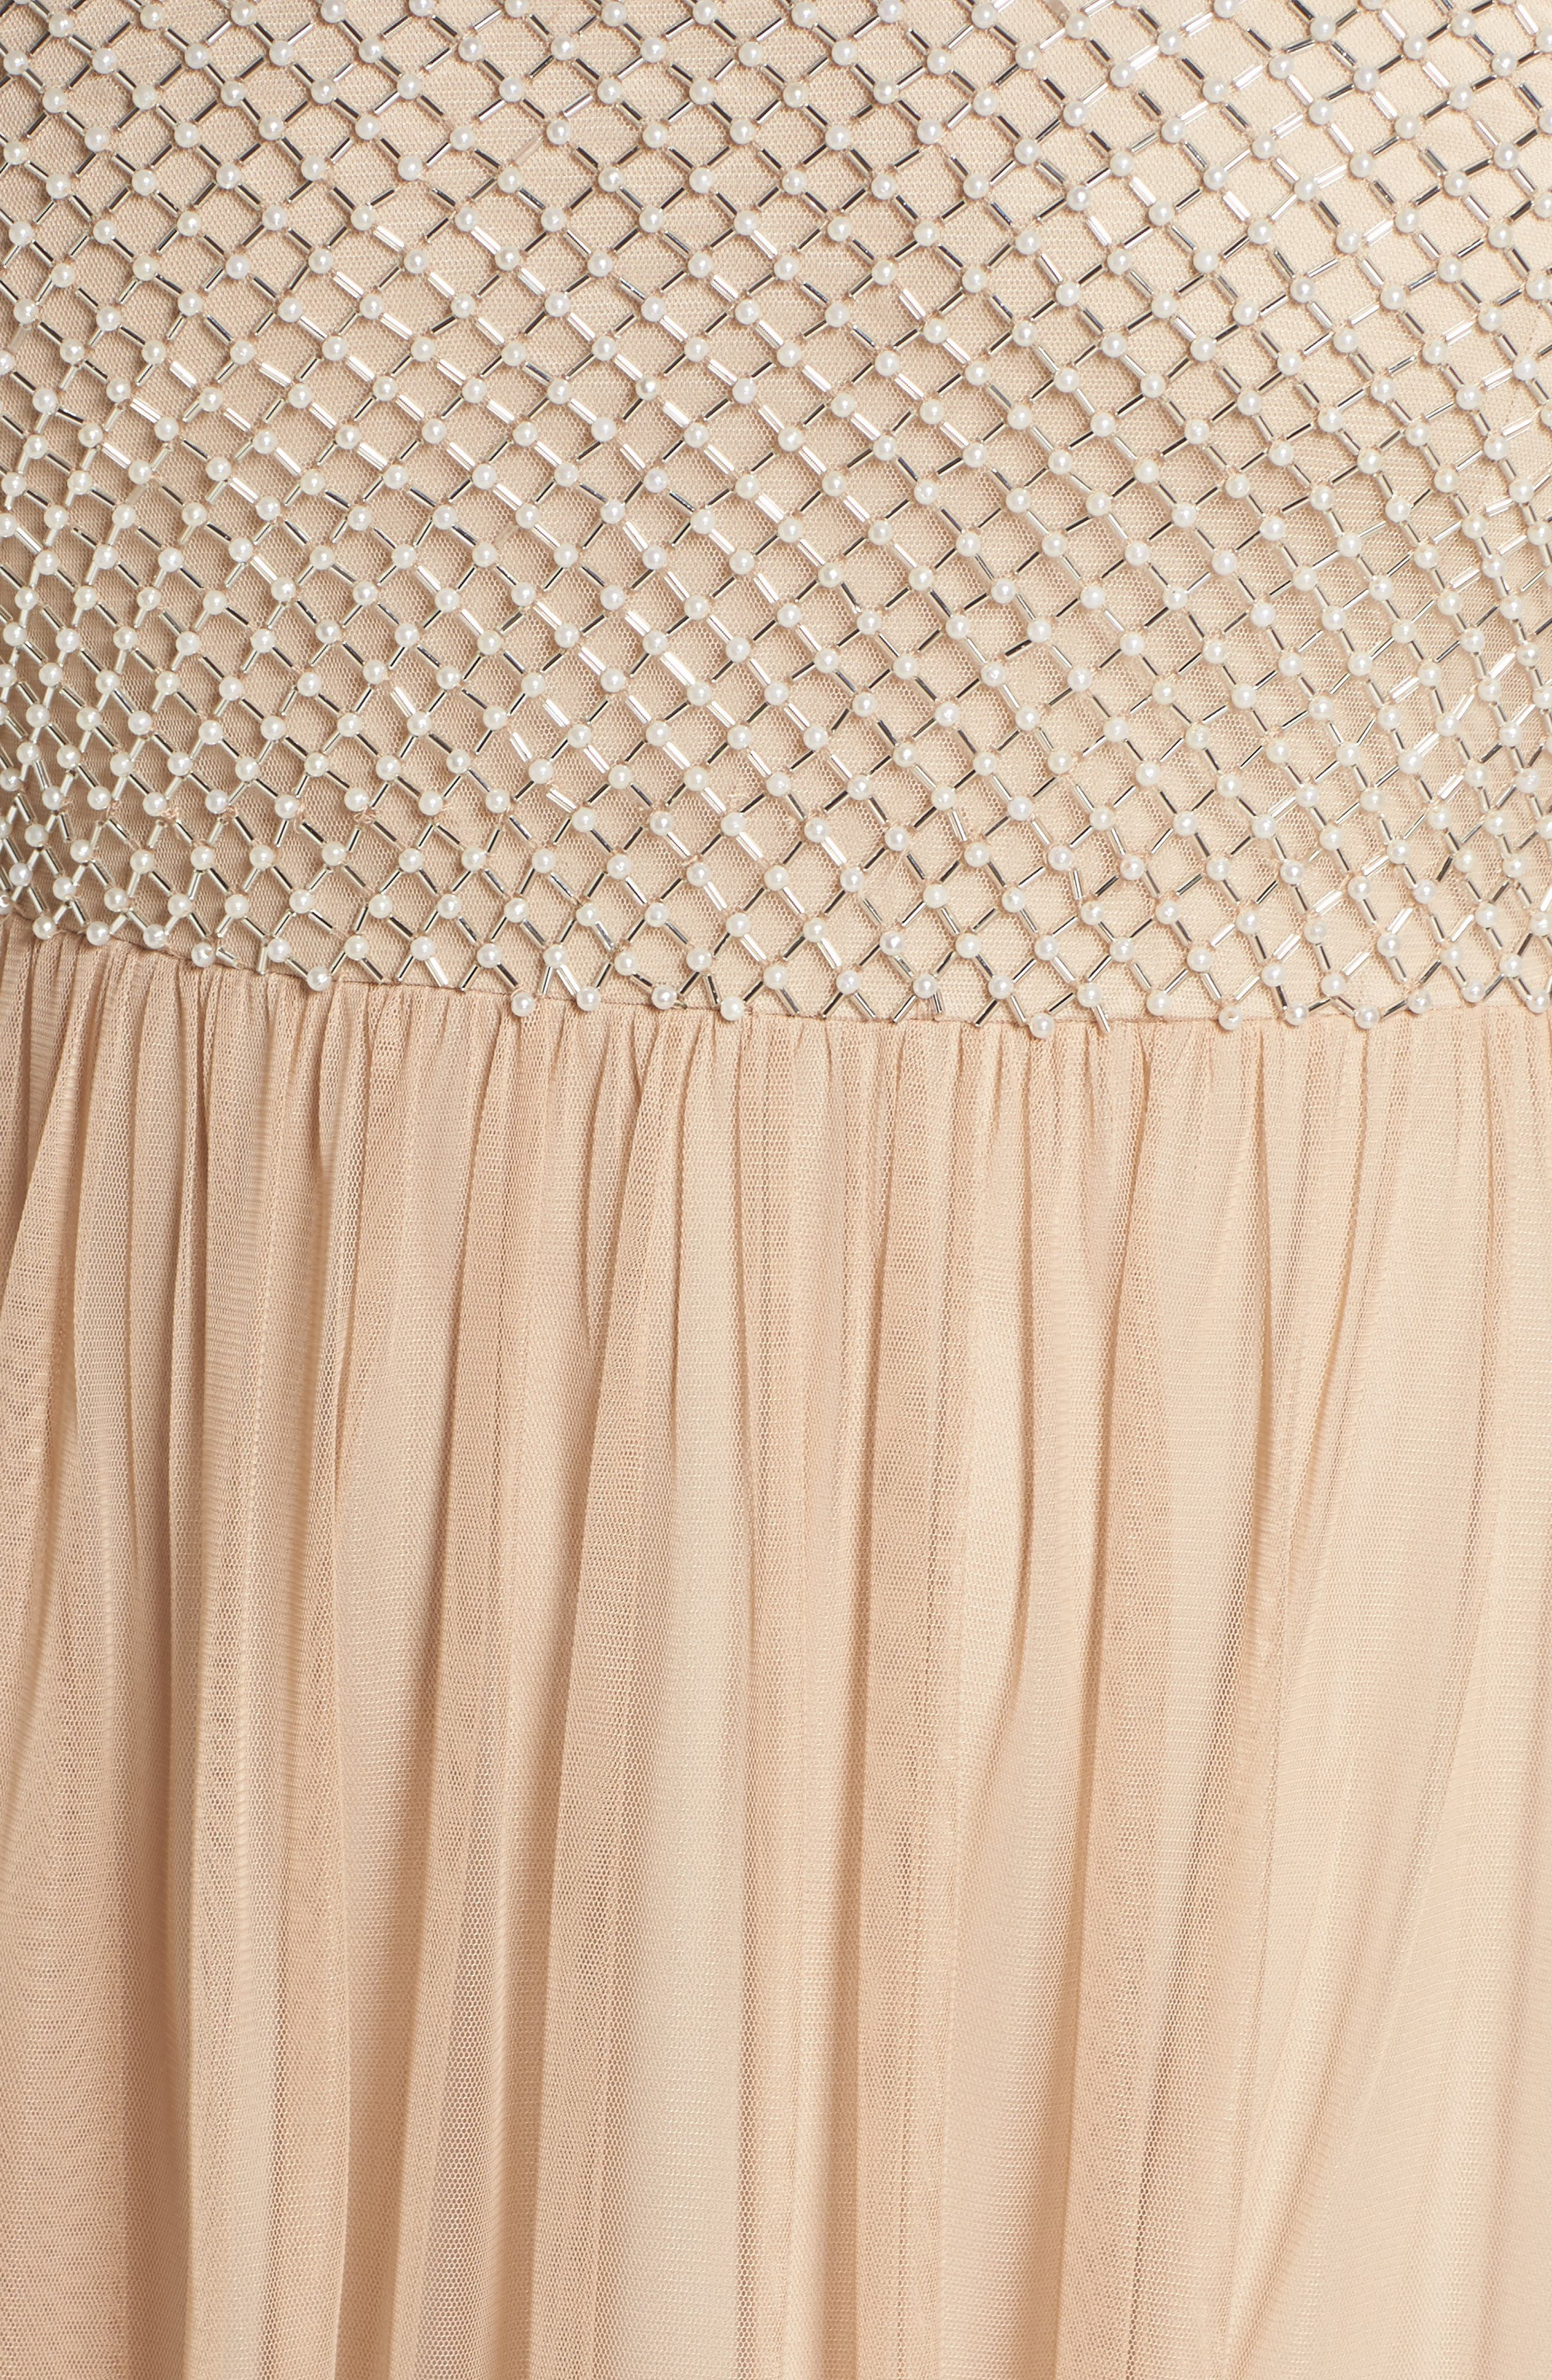 Beaded & Tulle Gown,                             Alternate thumbnail 5, color,                             Champagne